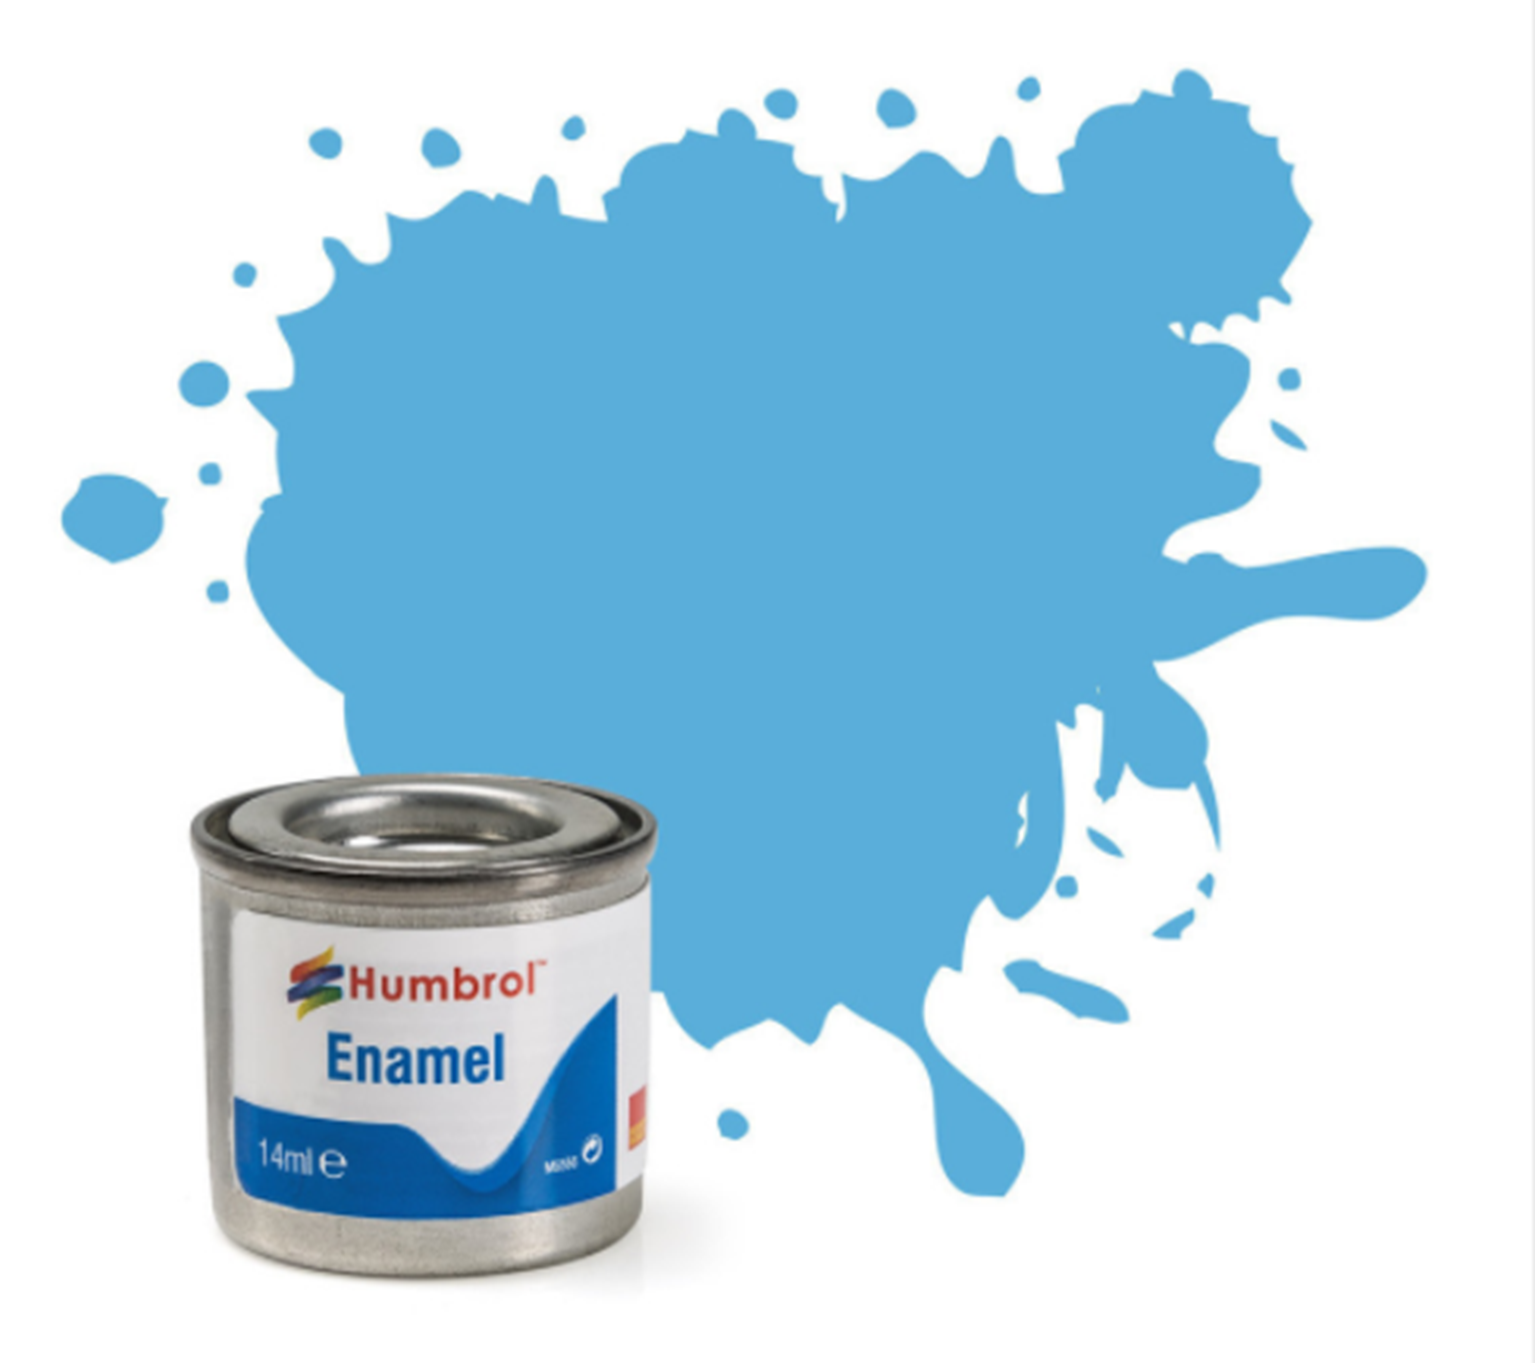 No 47 Sea Blue Gloss Enamel Paint (14ml)